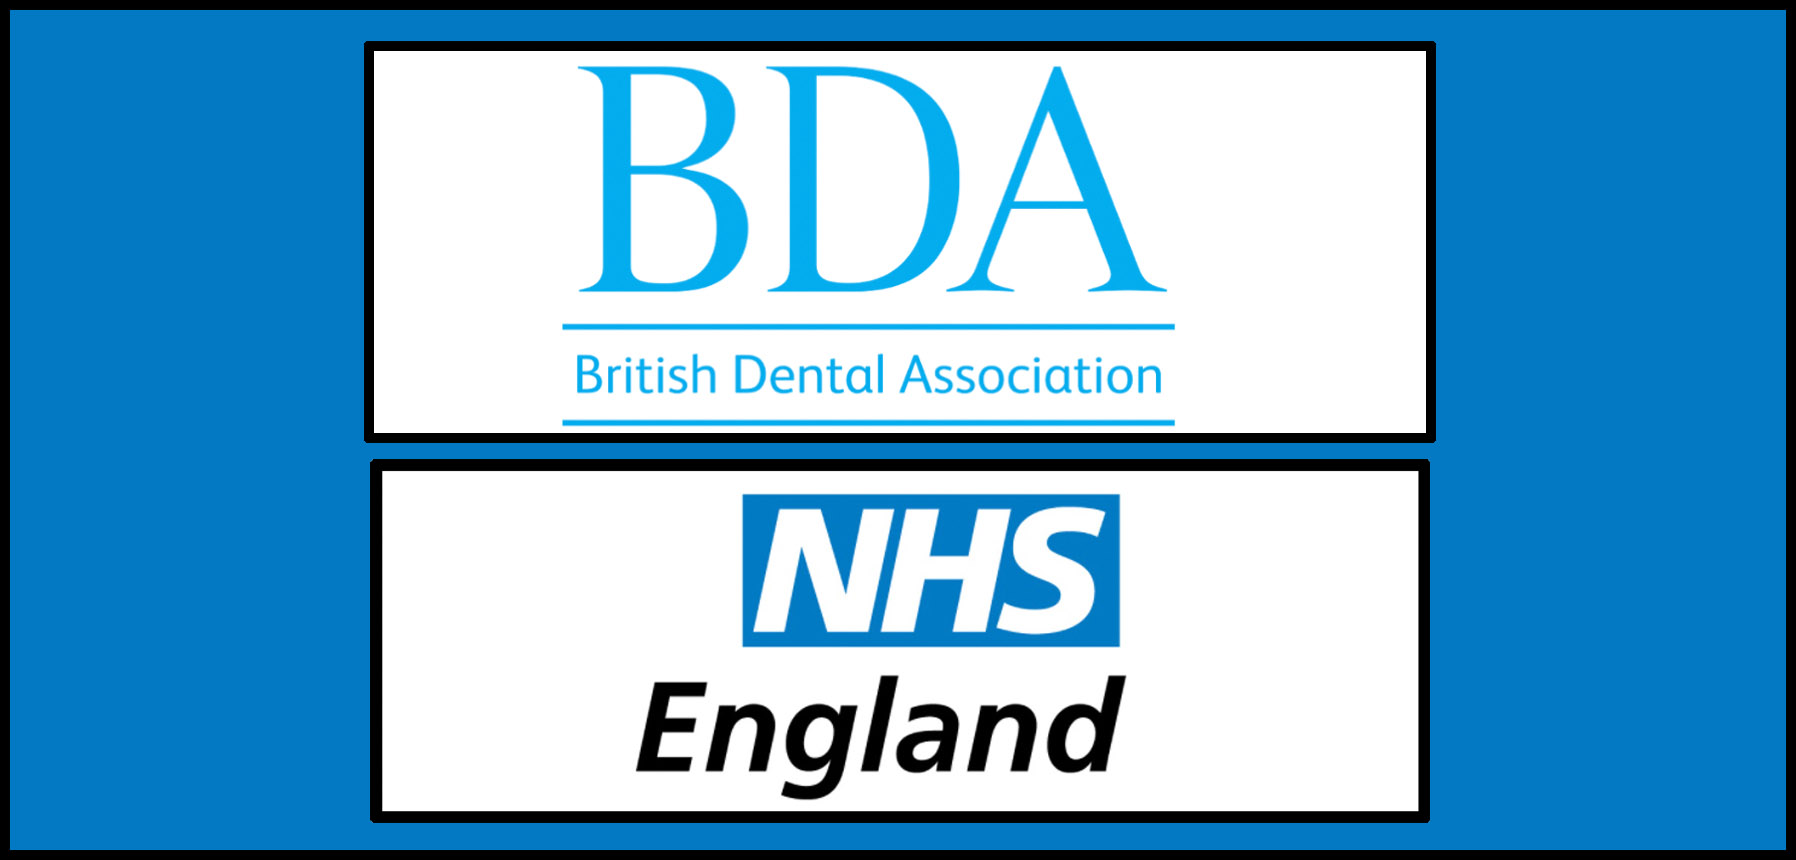 Increase In Activity Threshold 'Not Acceptable' Says BDA